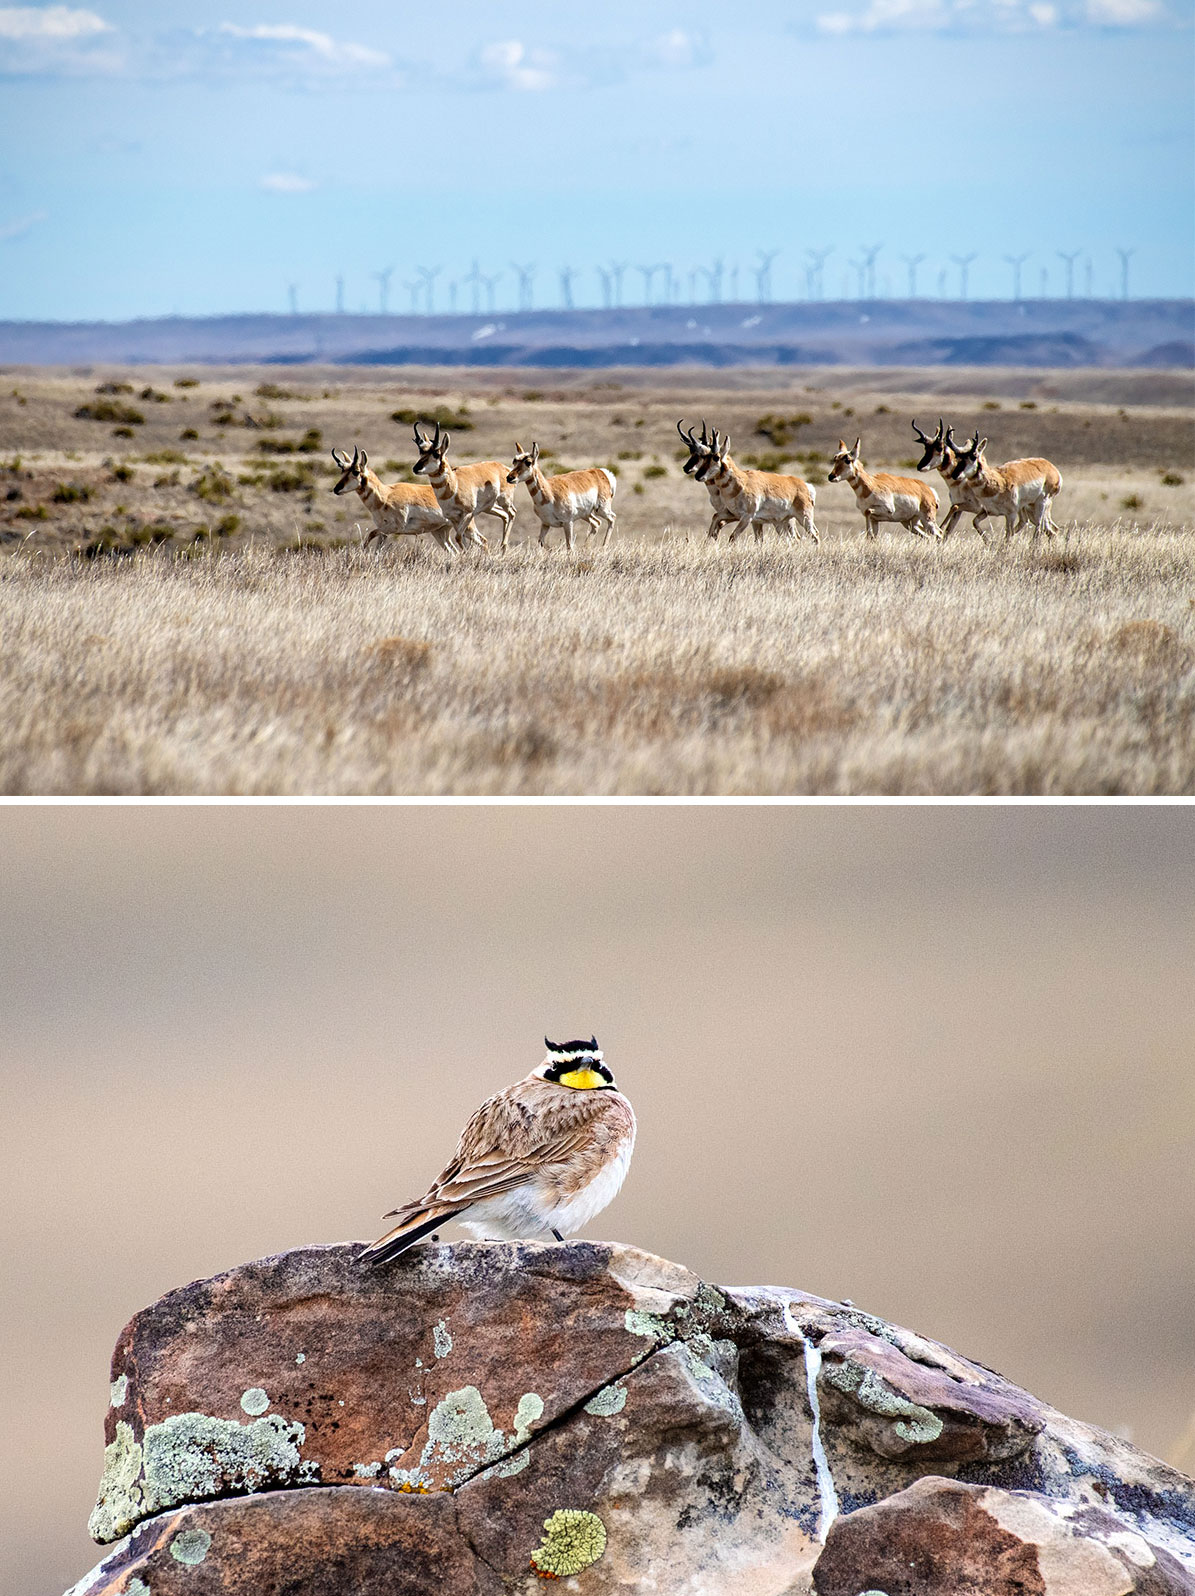 Top: A band of pronghorn move gracefully over shortgrass prairie at Soapstone Prairie Natural Area in Colorado. Bottom: With its distinctive ear tufts, a male Horned Lark rests on a lichen-covered boulder at Soapstone Prairie. Photos: Dave Showalter